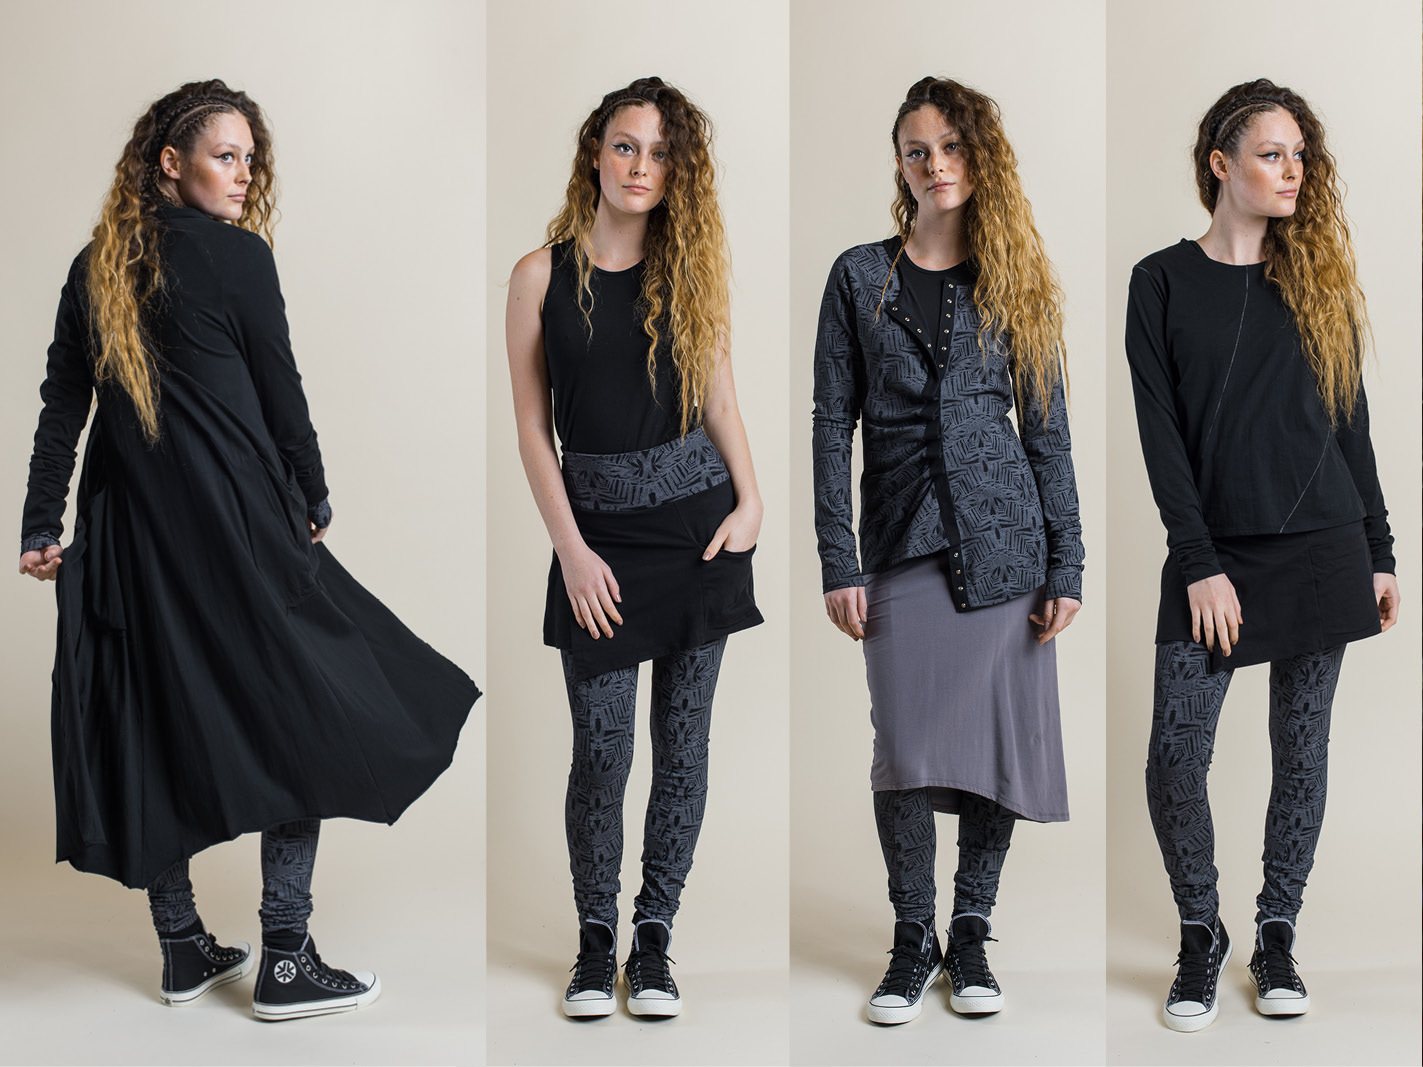 LEFT: Annabel coat (black), Fern print legging (shadow) MIDDLE LEFT: Tansy top (black) and Maggie skirt/pant (black/shadow print) MIDDLE RIGHT: Tansy top (black), Camille long cardi (shadow print) with Jezabel skirt (dove) and Fern print legging (shadow) RIGHT: Perla long sleeve top (black) and Maggie skirt/pant (black/shadow print)